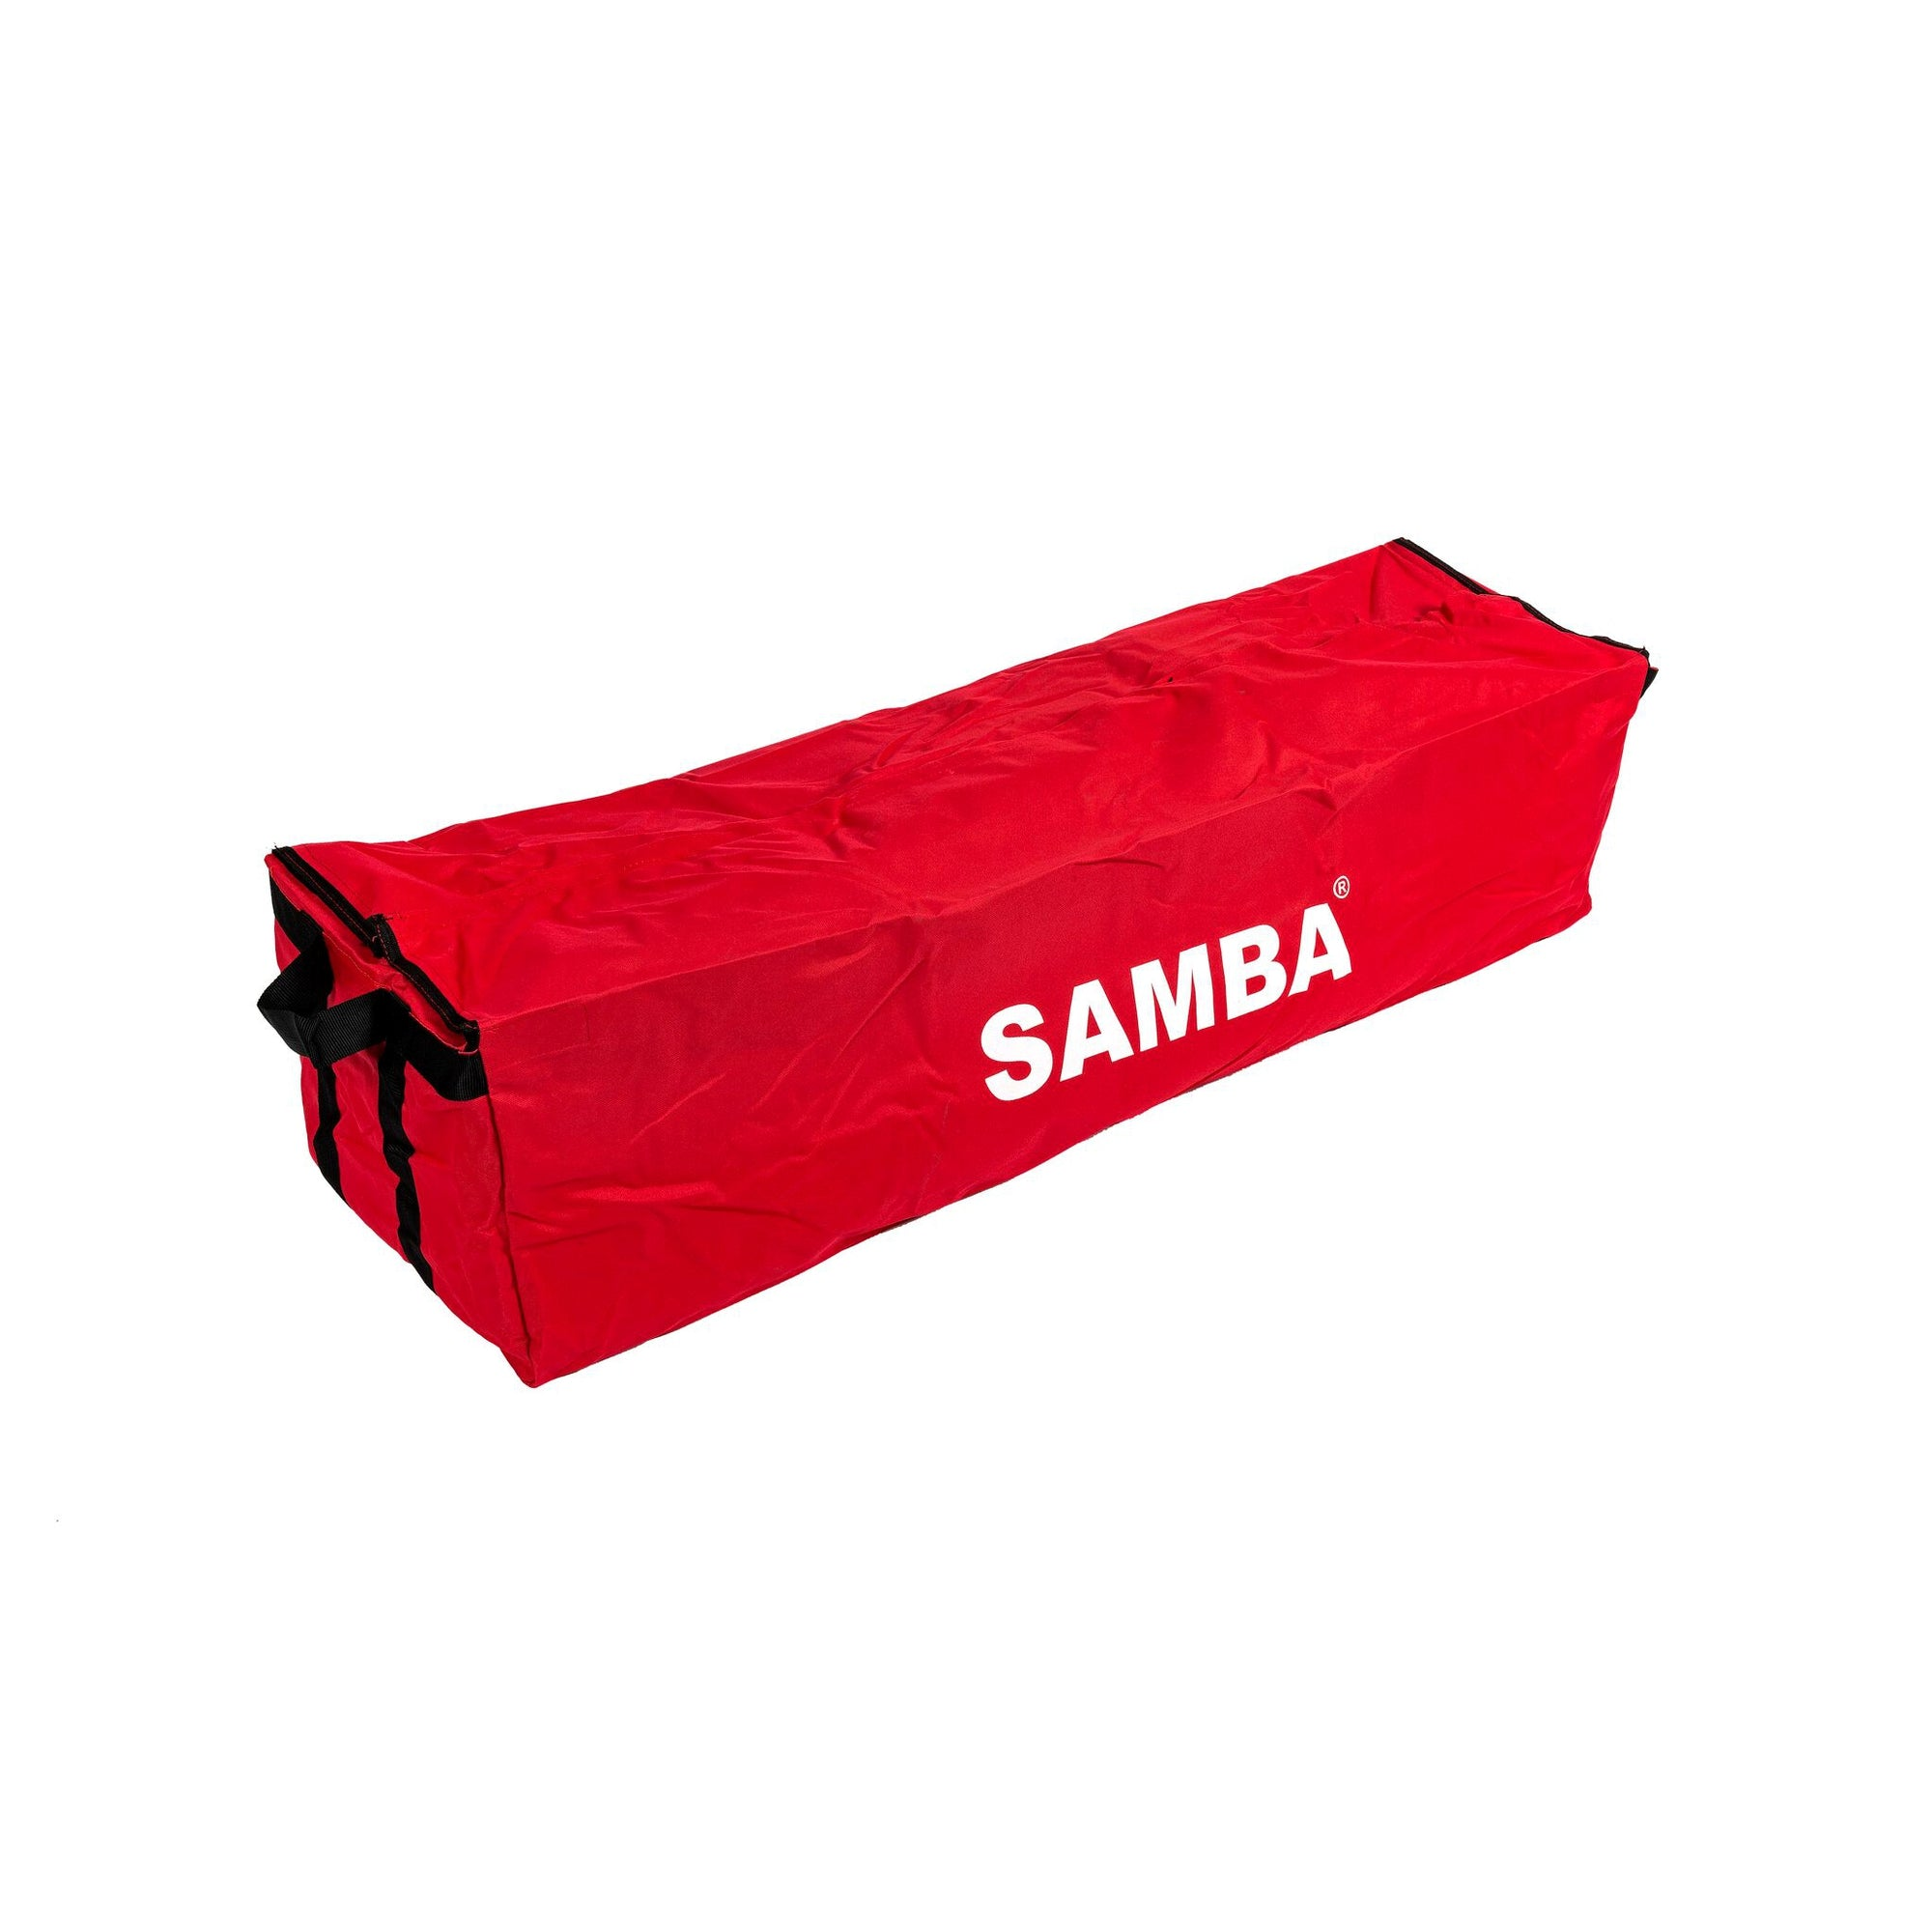 Red Samba 16 x 7 Match Goal Carry Bag